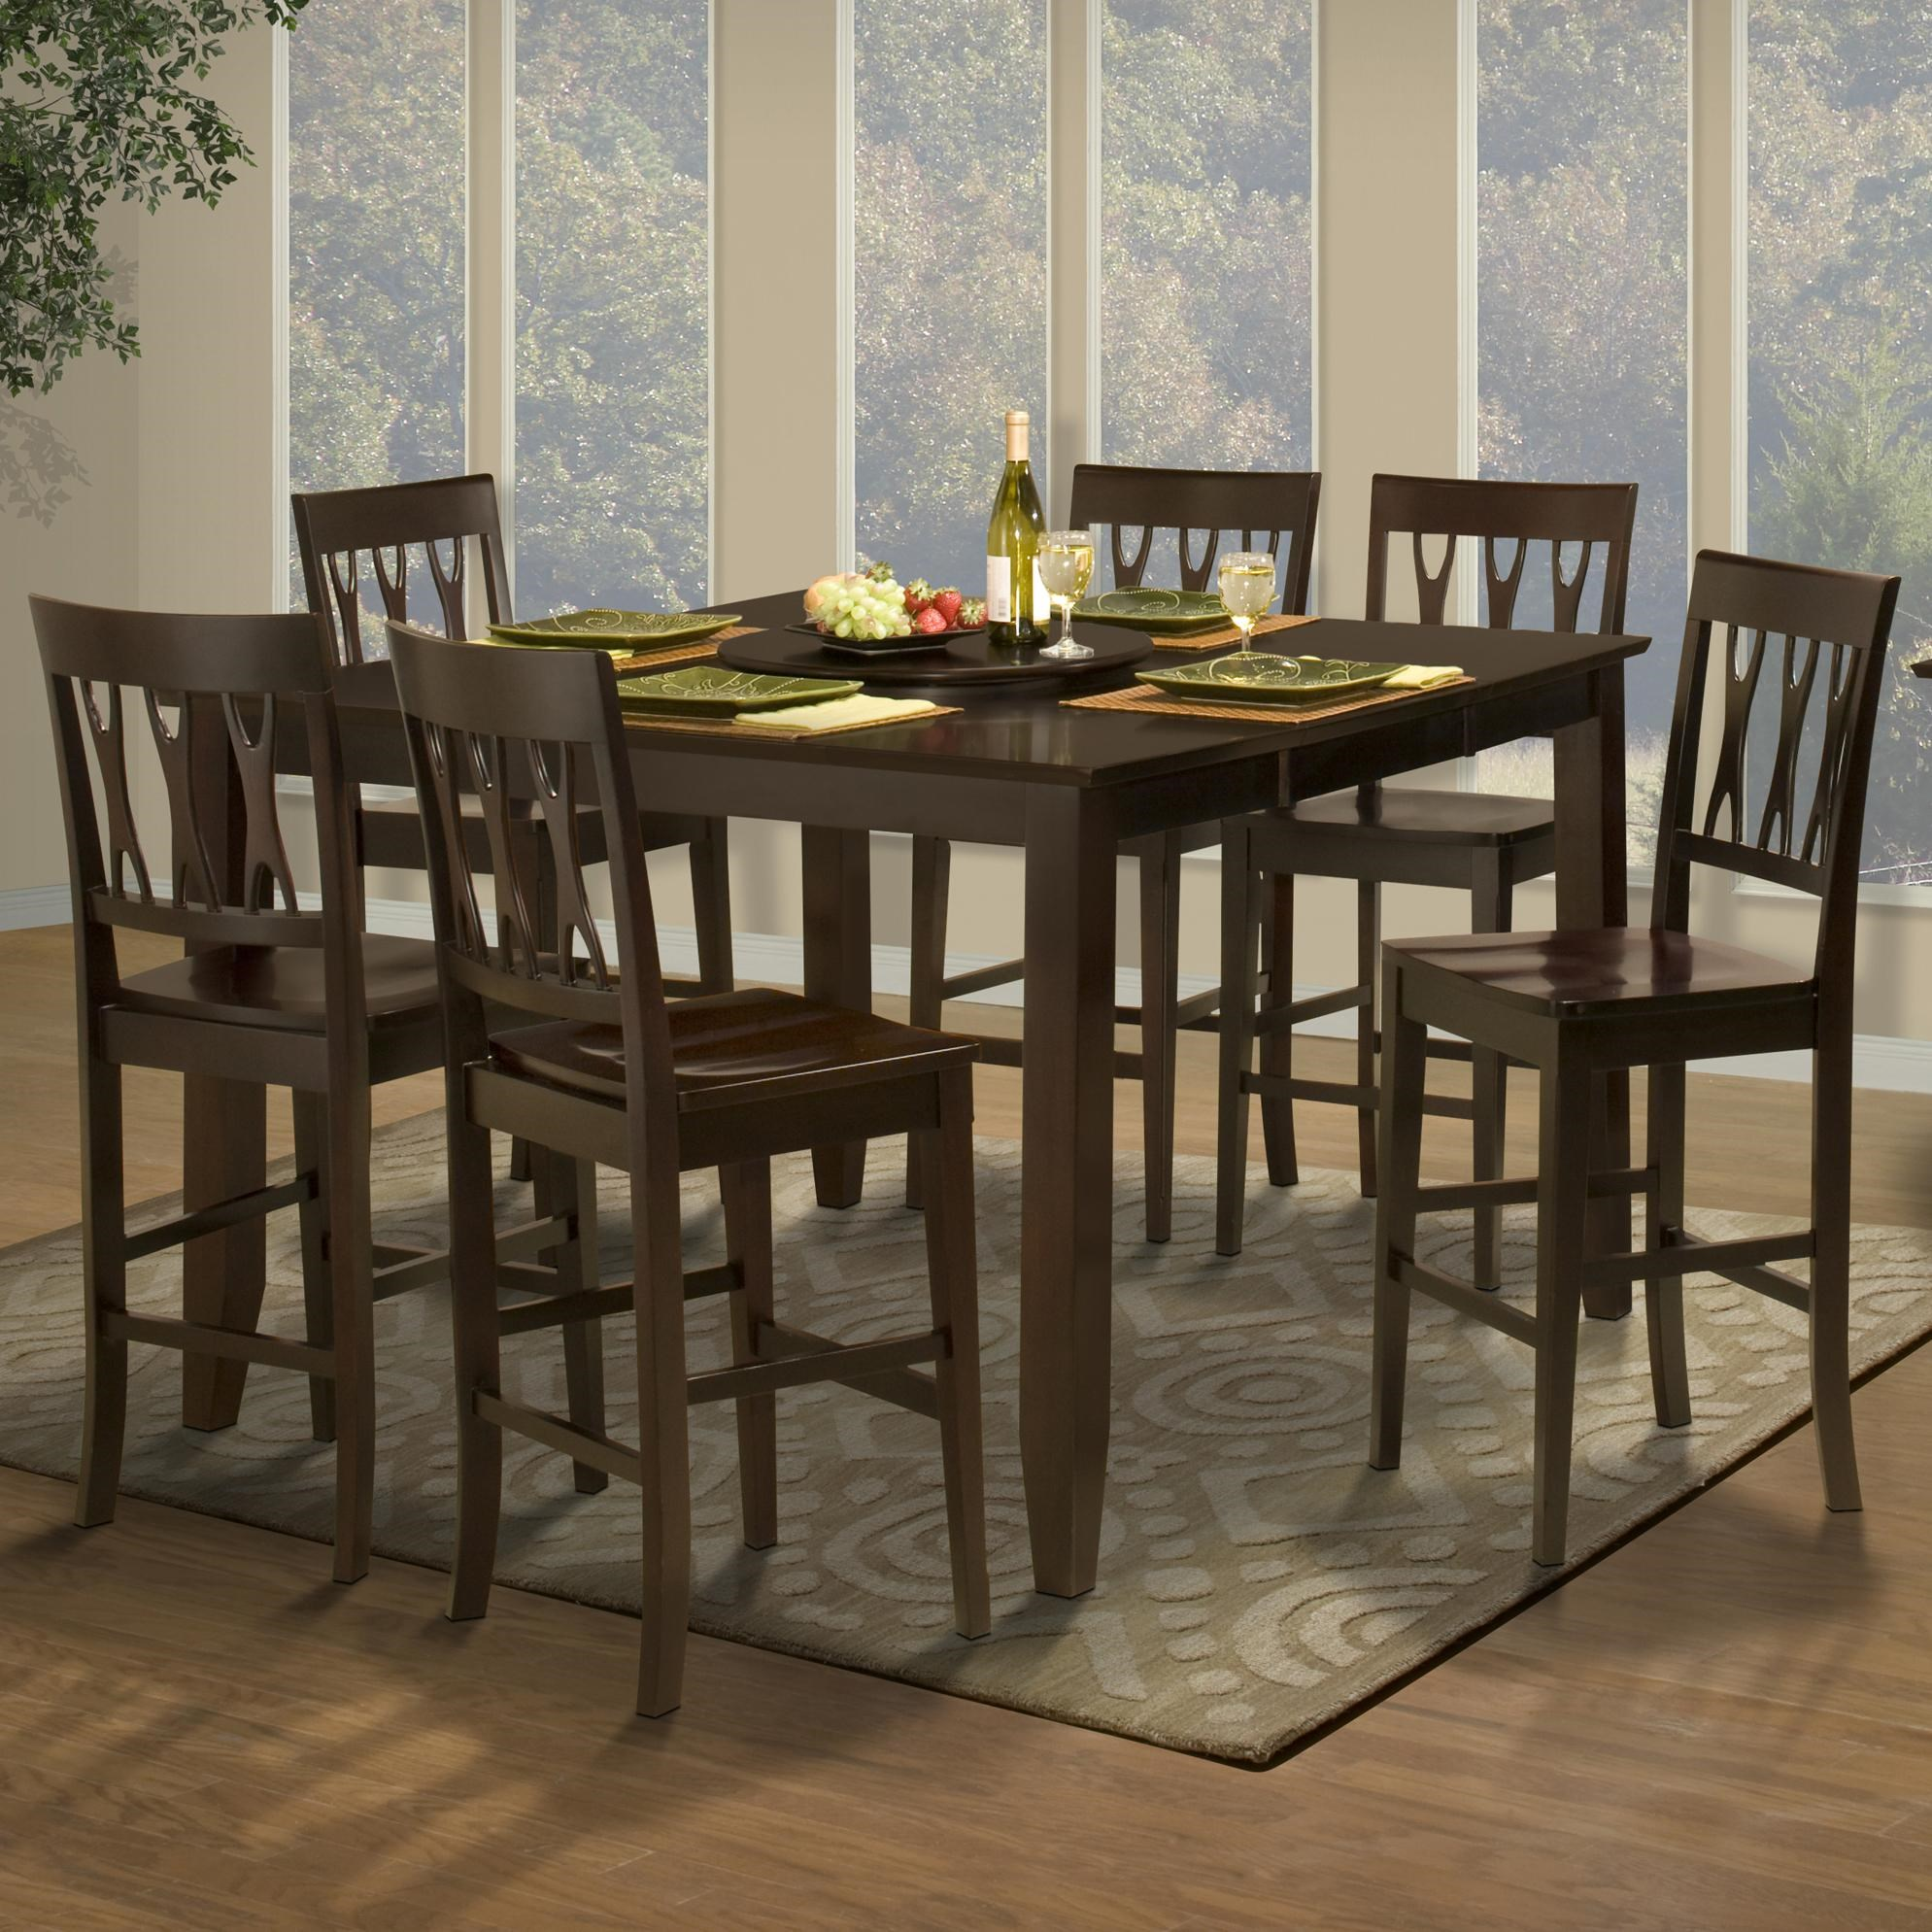 Styles Of Chairs Style 19 7 Piece Counter Height Table And All Wood Abbie Chair Set By New Classic At Rife S Home Furniture